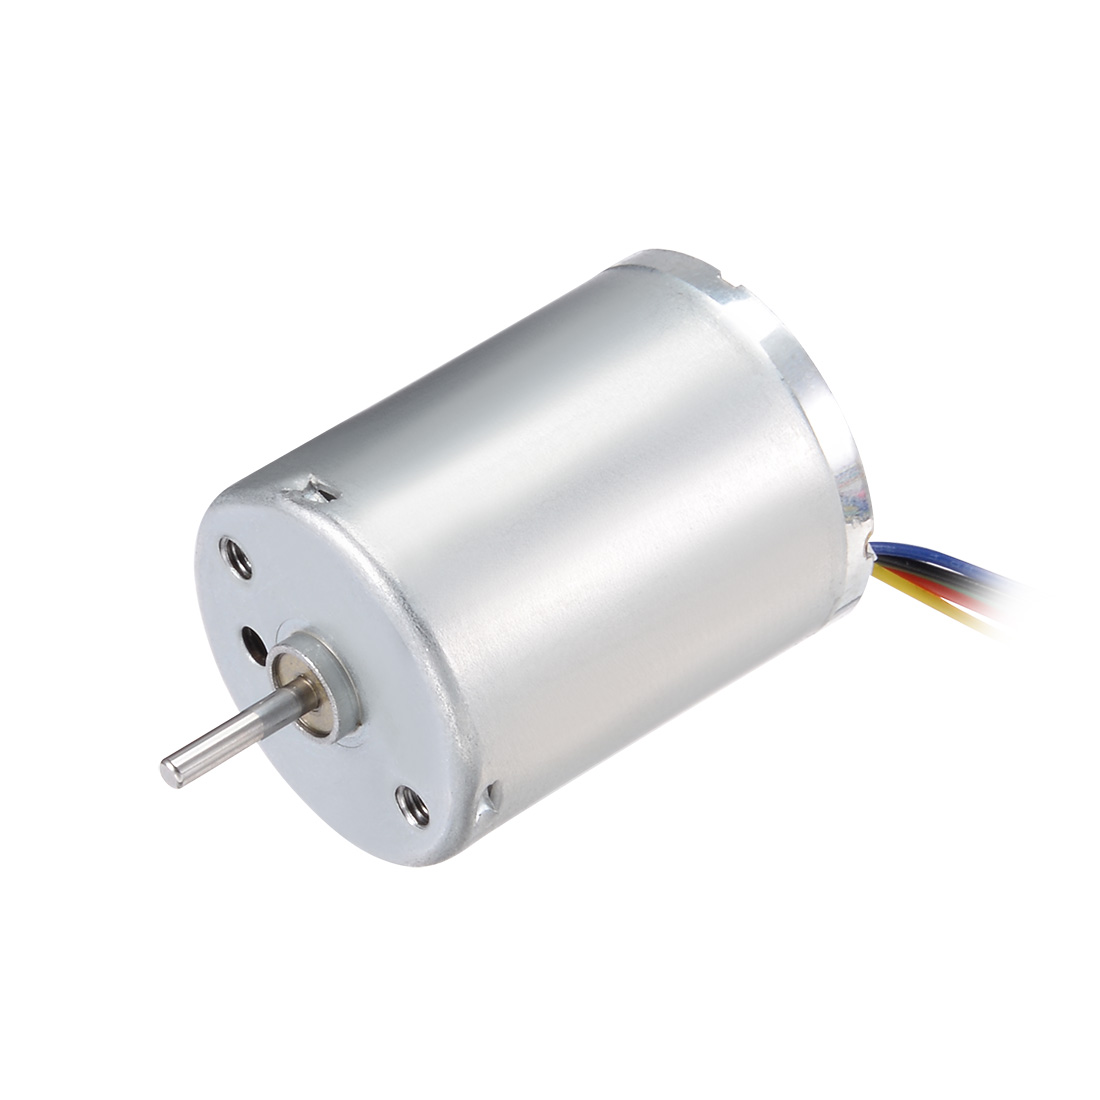 Micro Motor DC 12V 6000RPM 5 Wire High Speed Motor for DIY Hobby Toy Cars